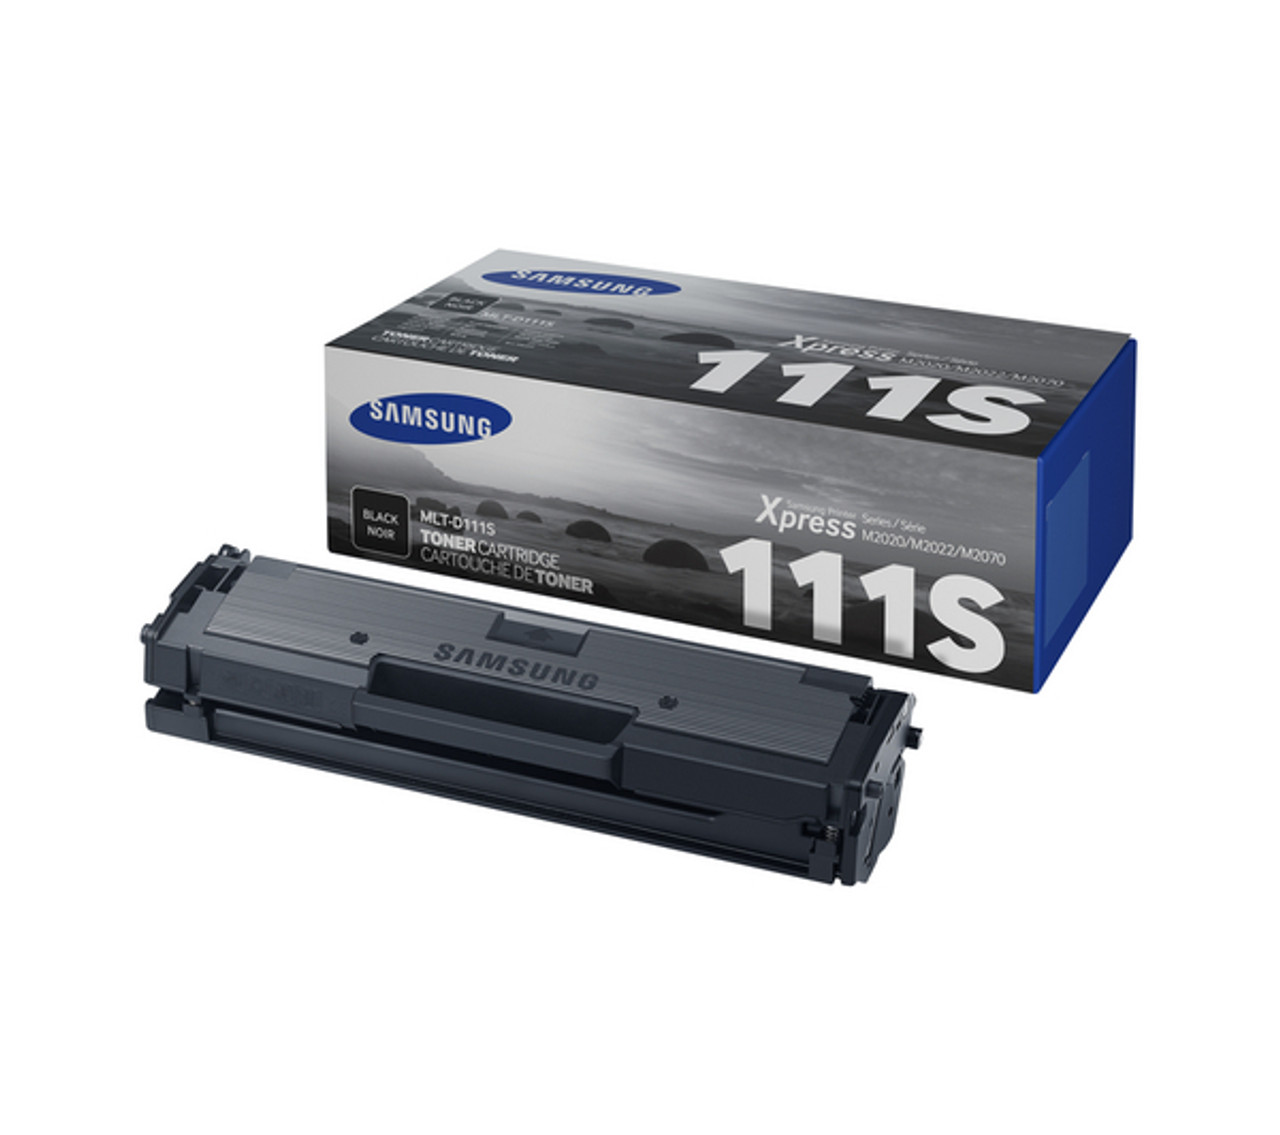 High Capacity Original Black Samsung Mlt-d111s Toner Cartridge (Mlt-d111s/els)